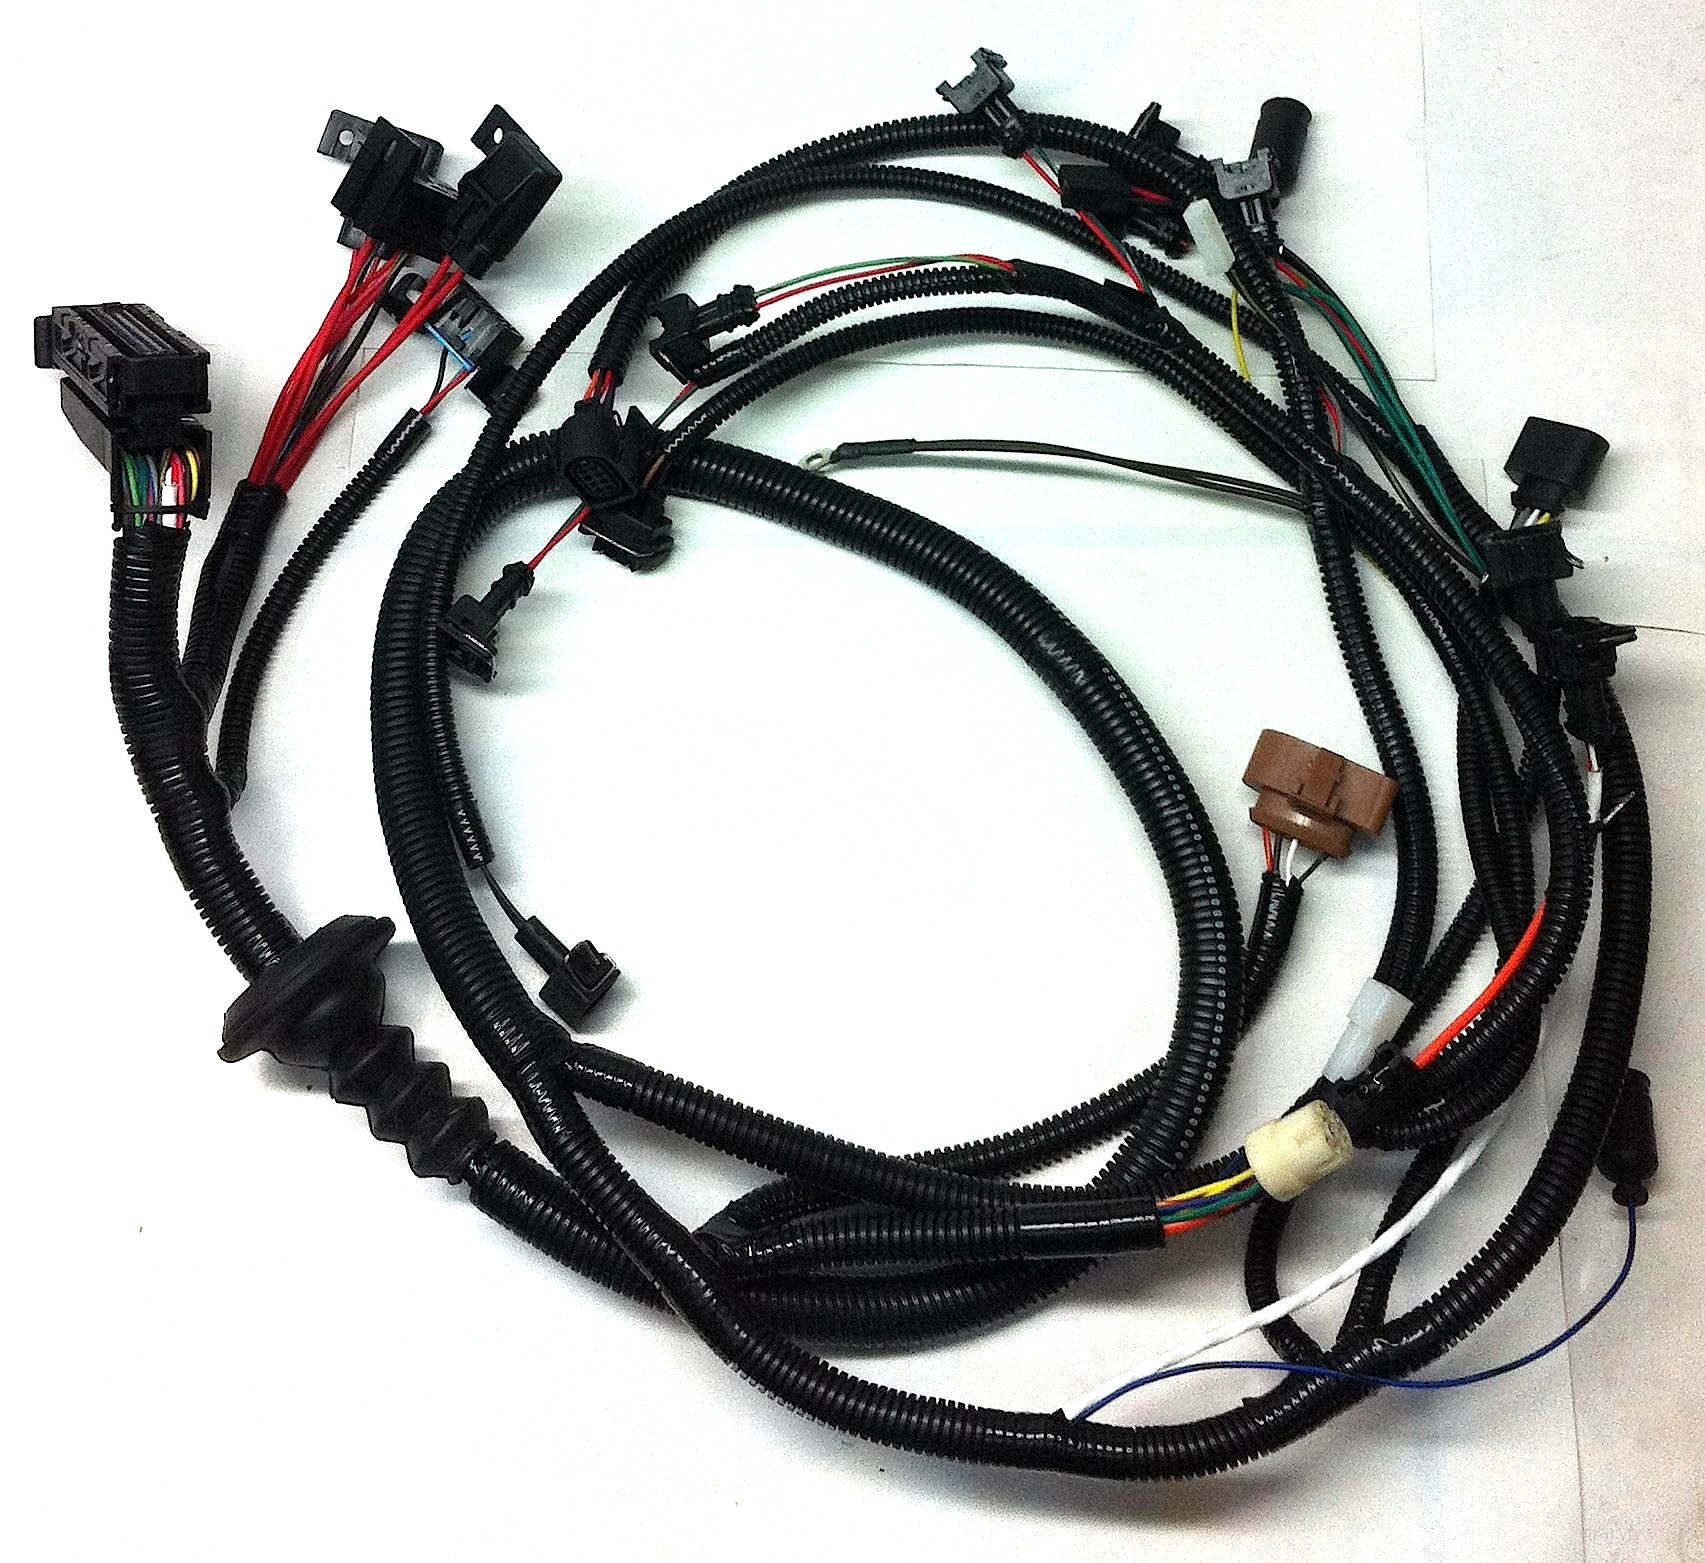 Wiring_Harness_2LR 2lr tiico conversion wiring harness foreign auto & supply, inc wire harness supplies at panicattacktreatment.co